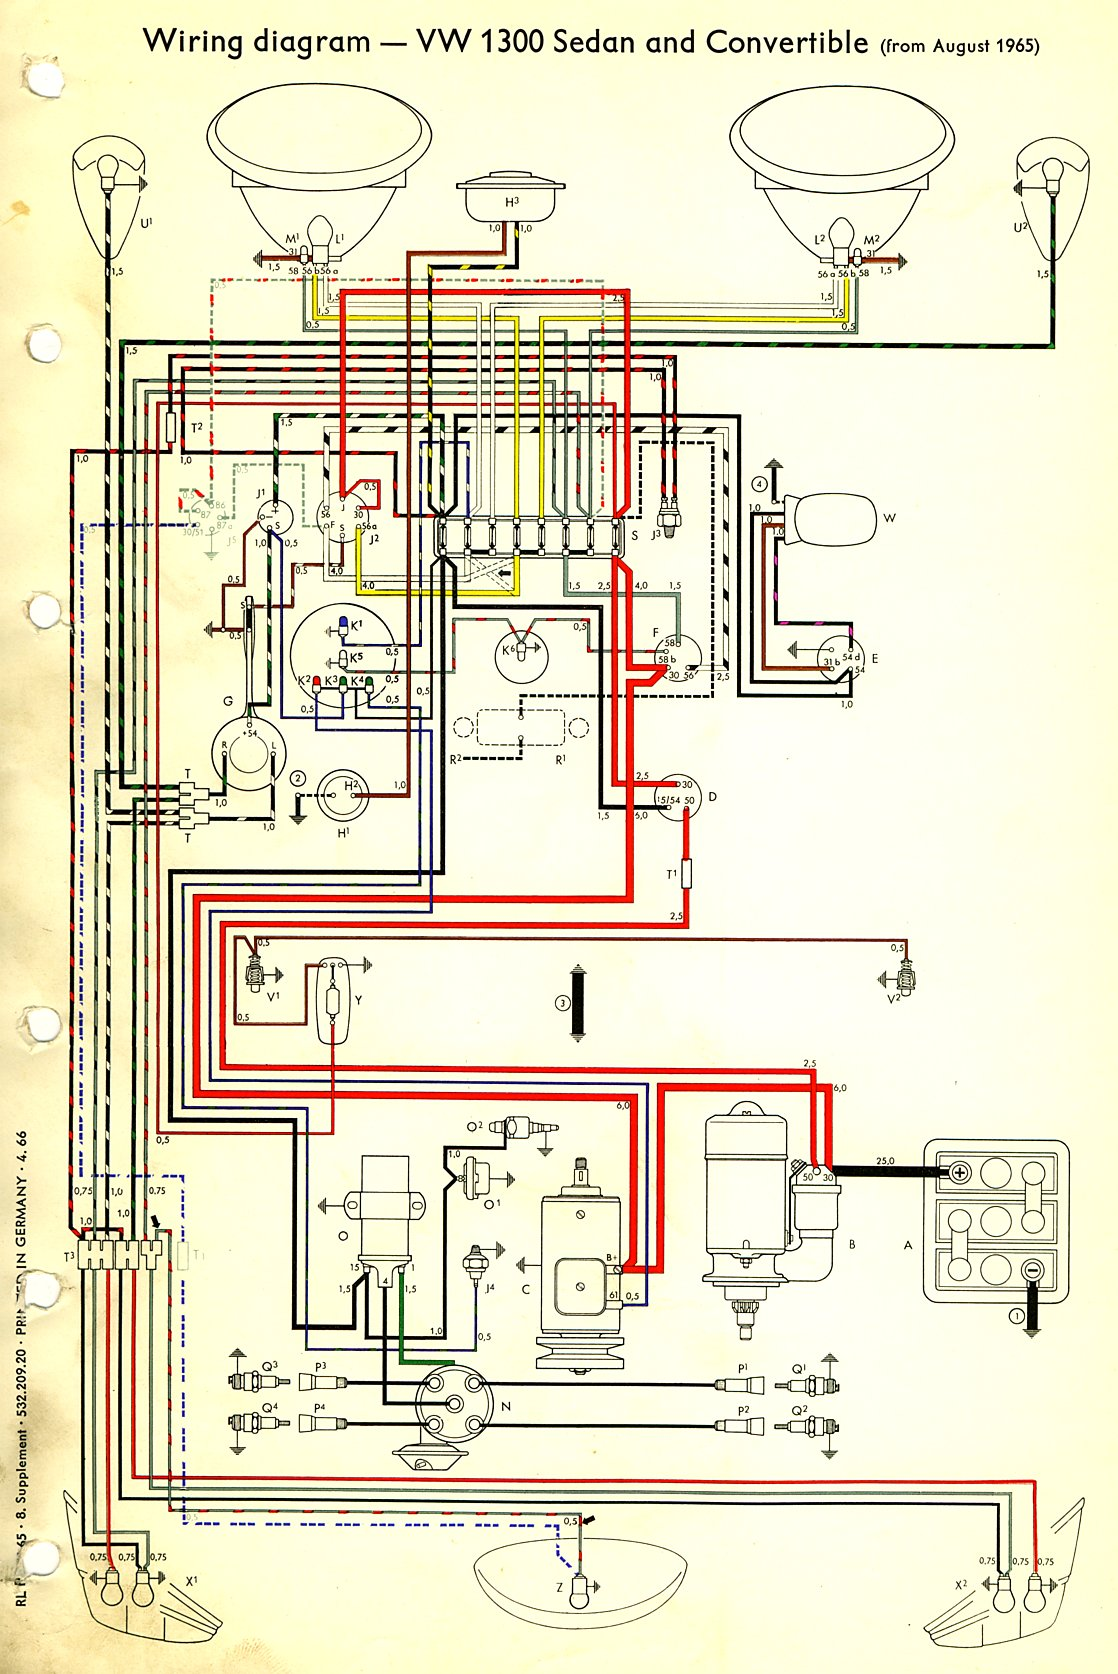 1972 vw bus wiring diagram street rod 1974 get free image about